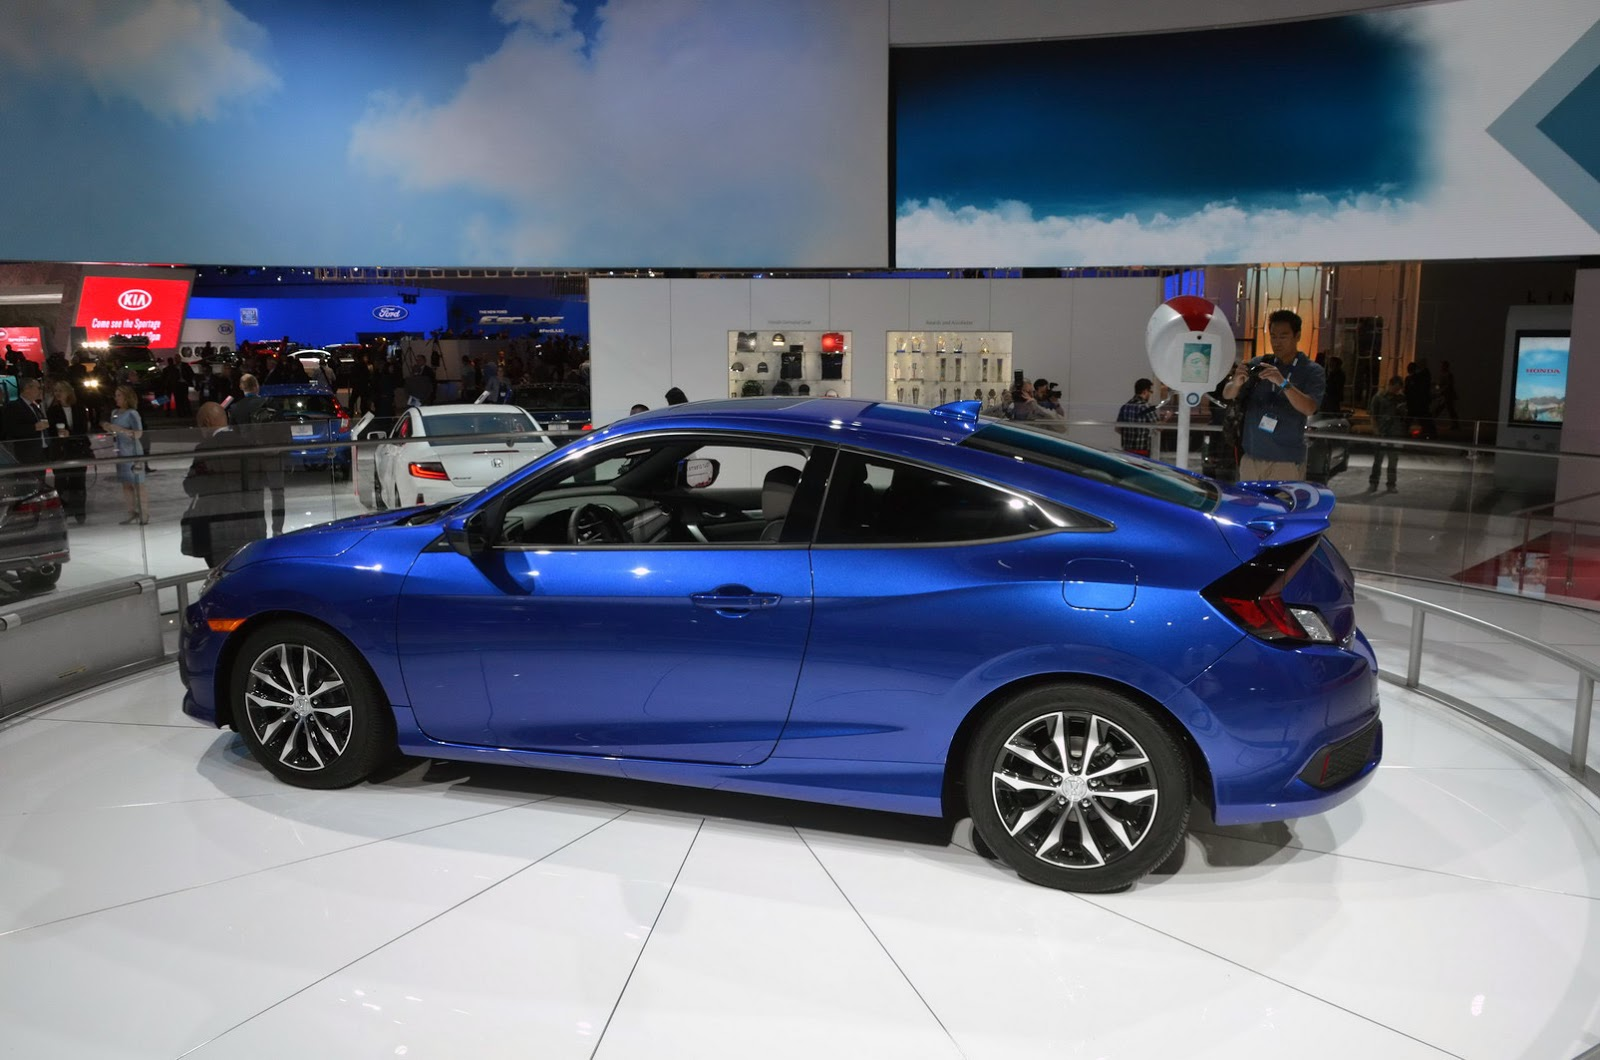 2016 honda civic coupe flaunts bold new looks in la. Black Bedroom Furniture Sets. Home Design Ideas